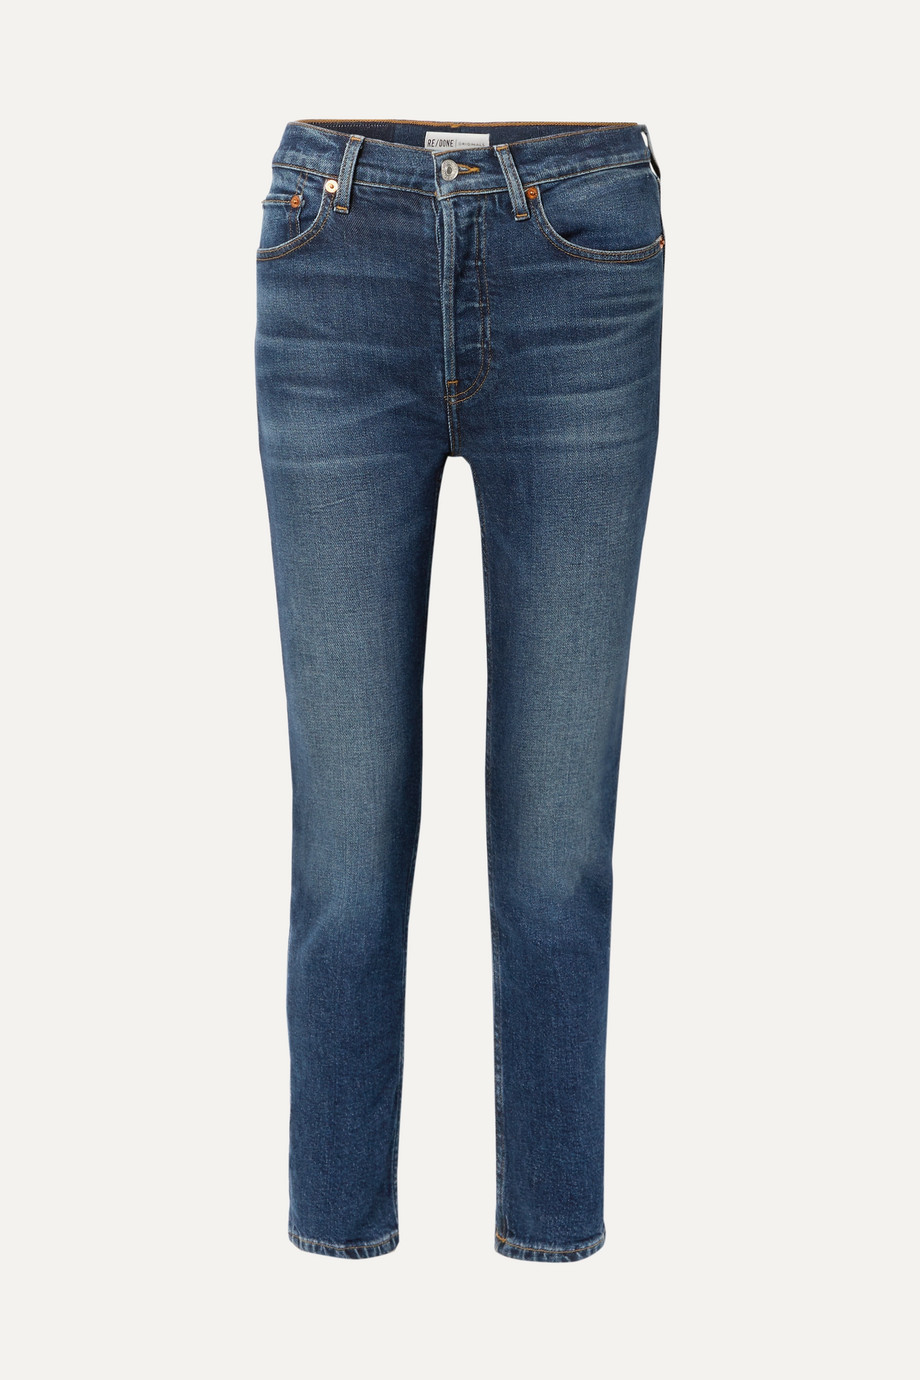 RE/DONE Comfort Stretch High-Rise Ankle Crop skinny jeans